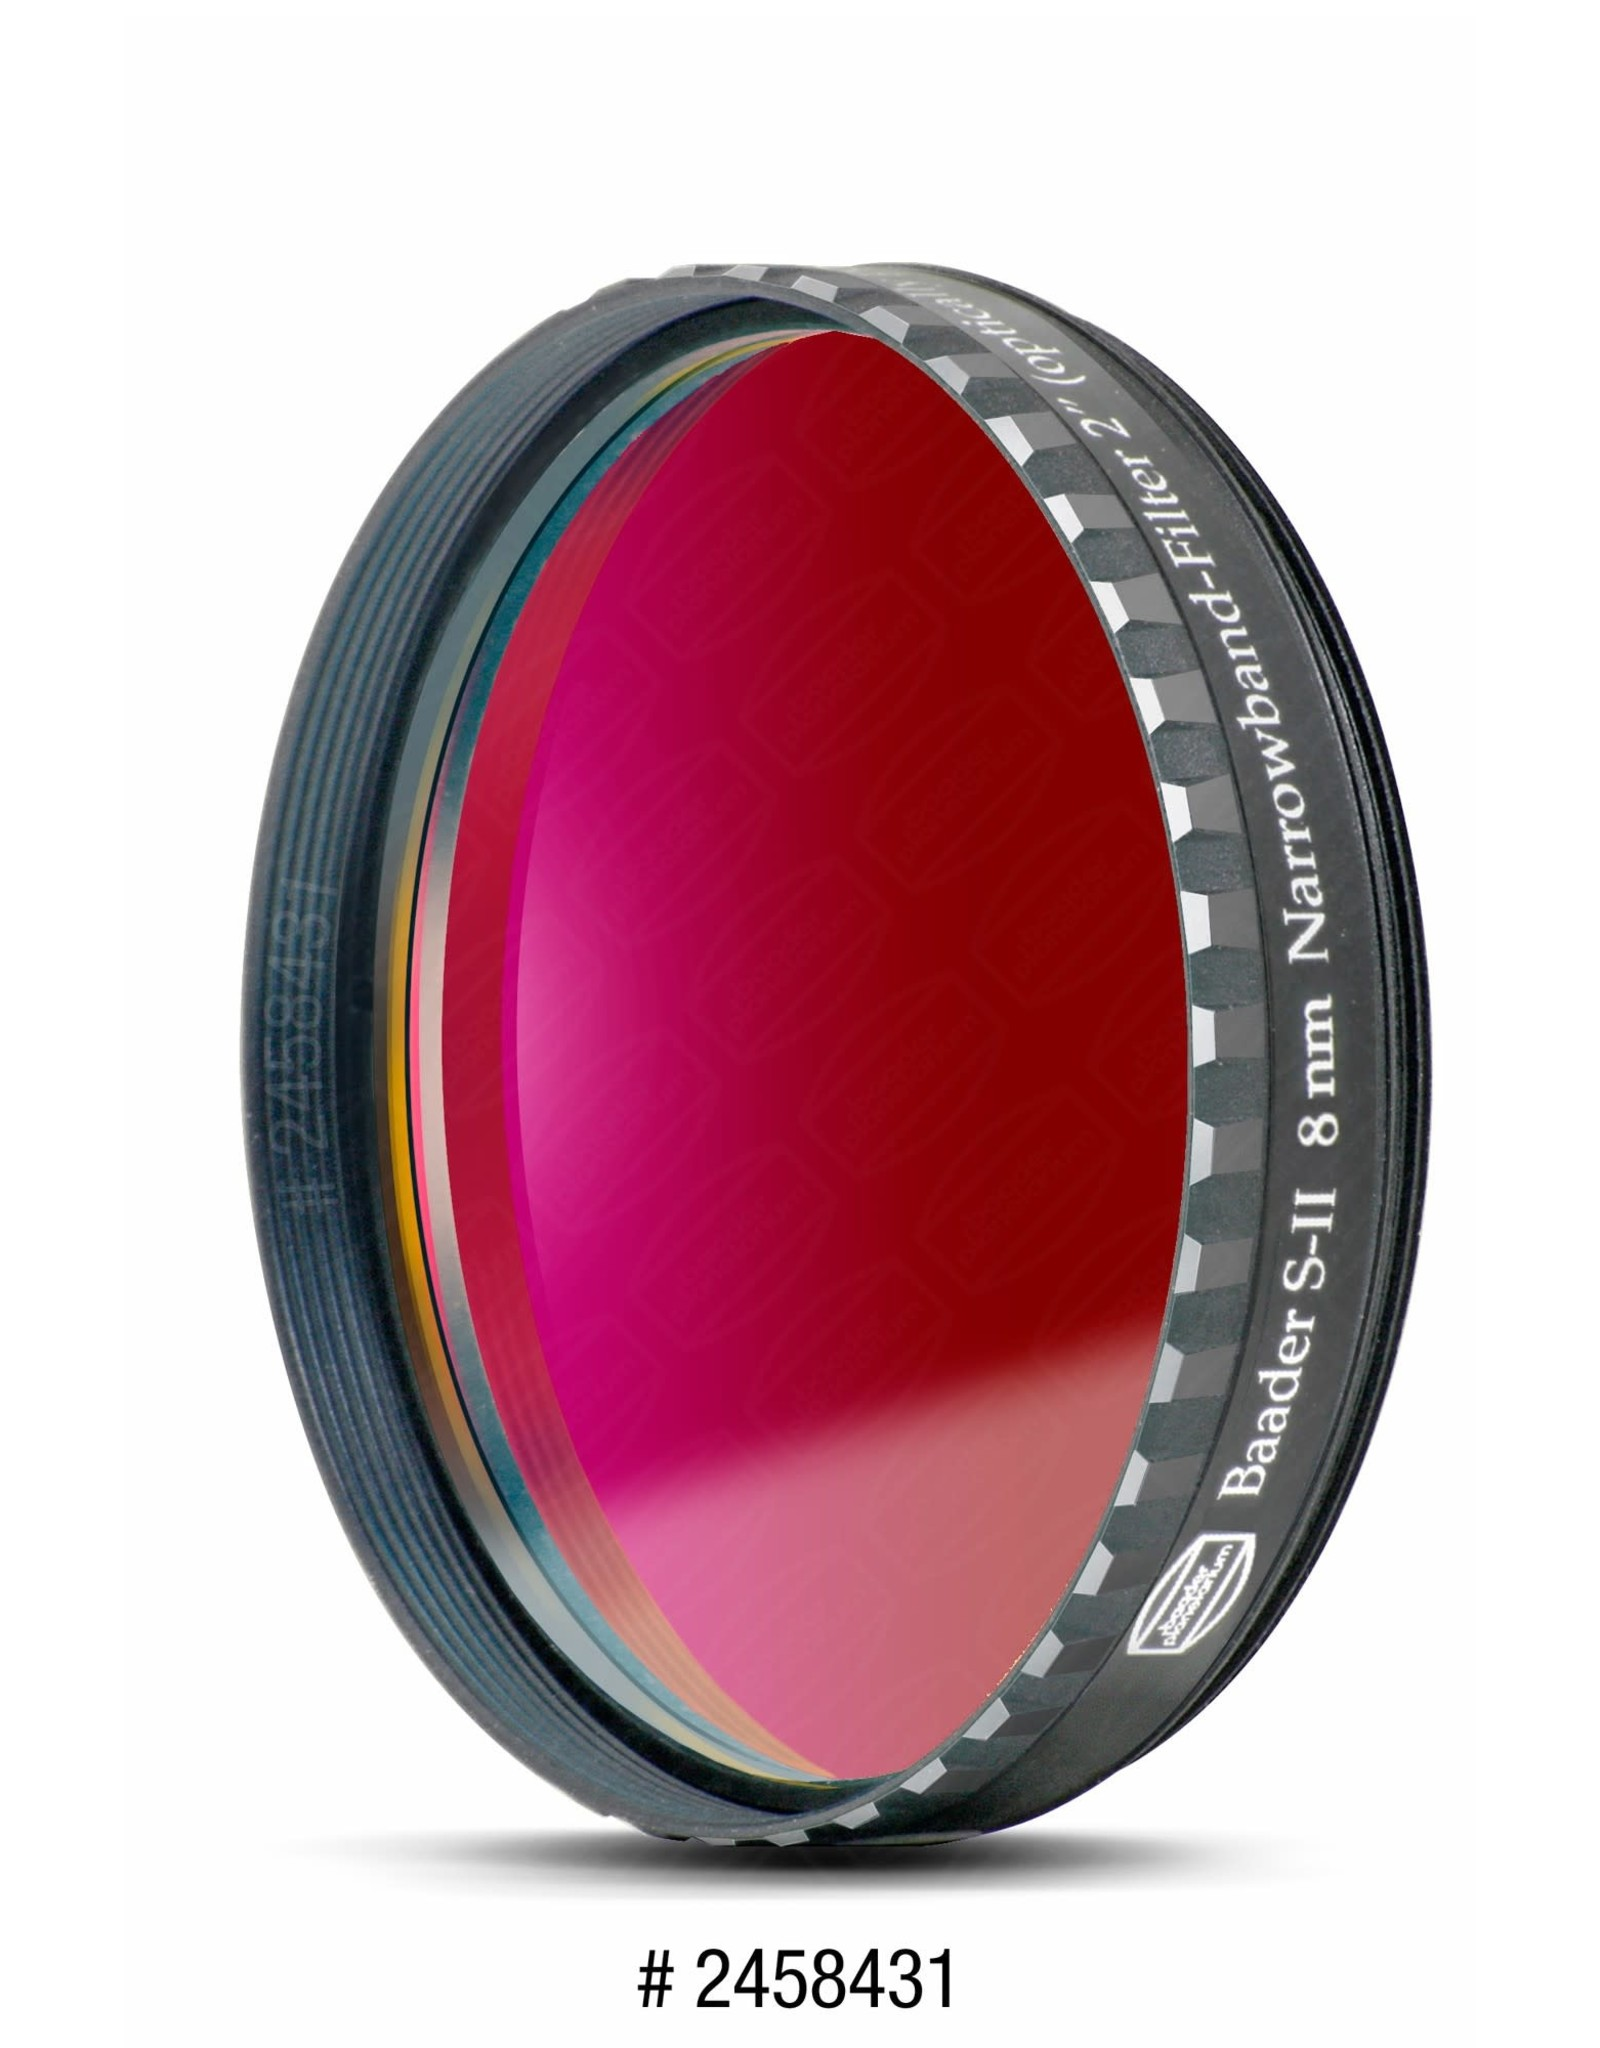 Baader Planetarium Baader S II 8nm CCD Narrowband-Filter (Specify Size)